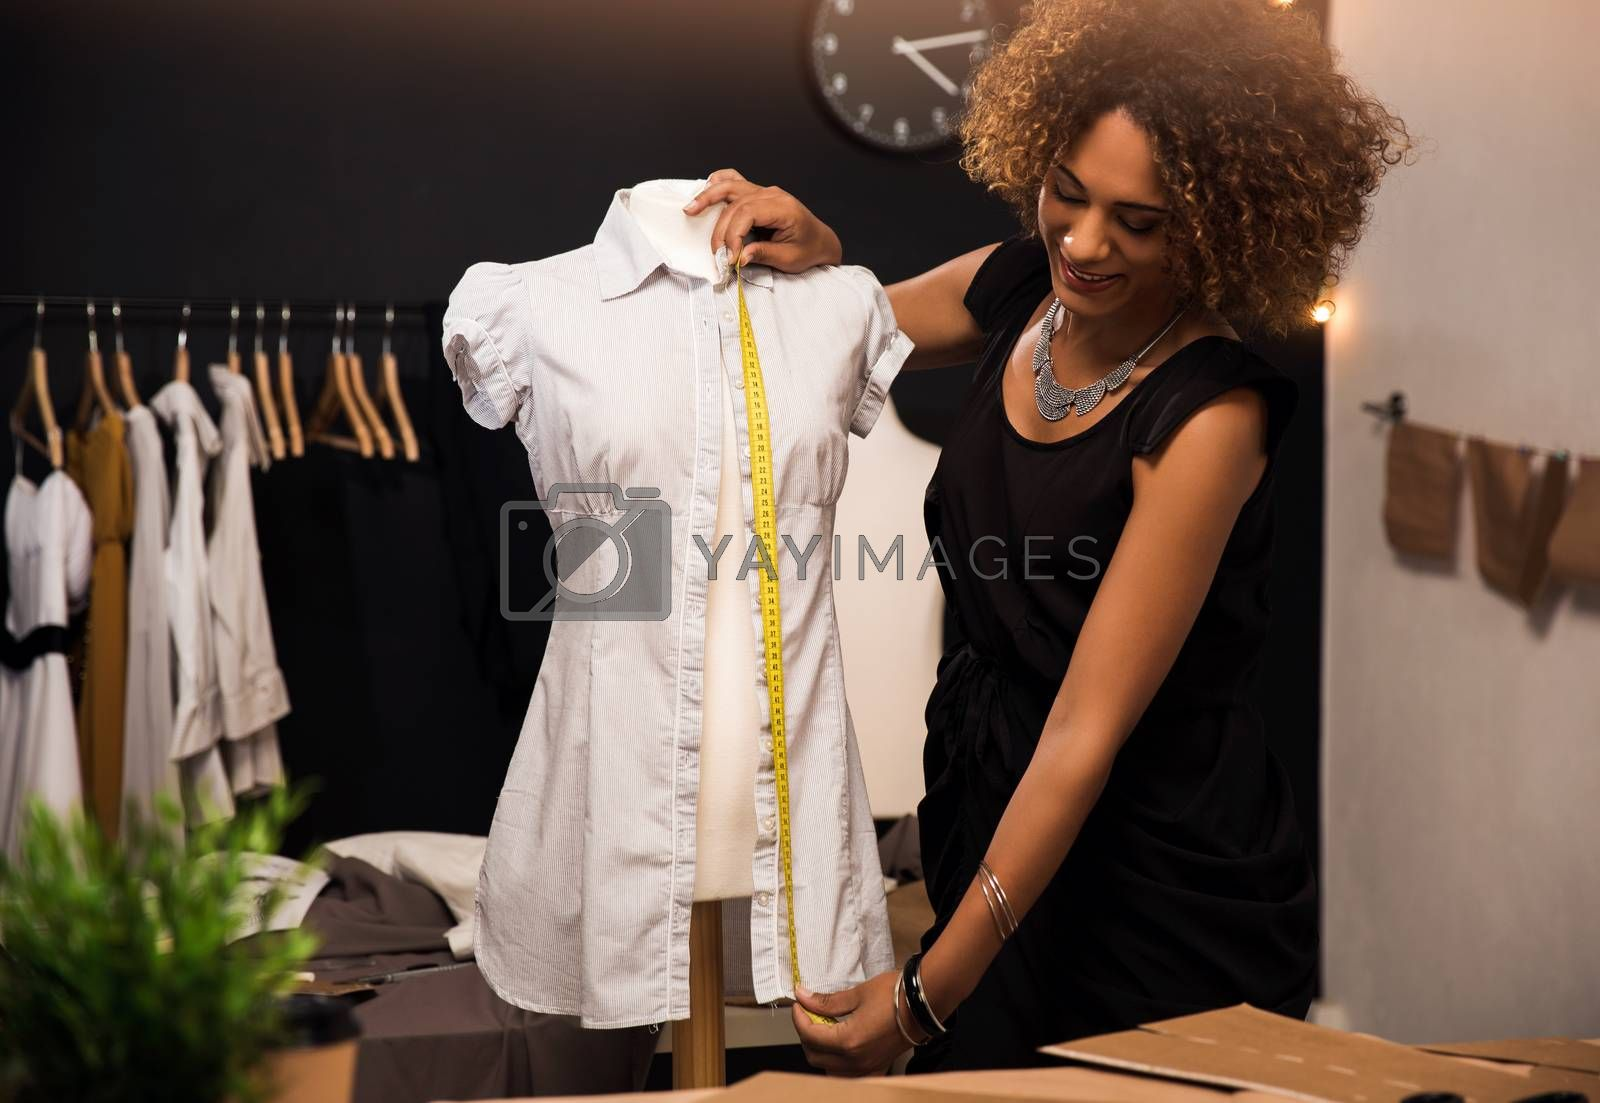 Young fashion designer working on her atelier